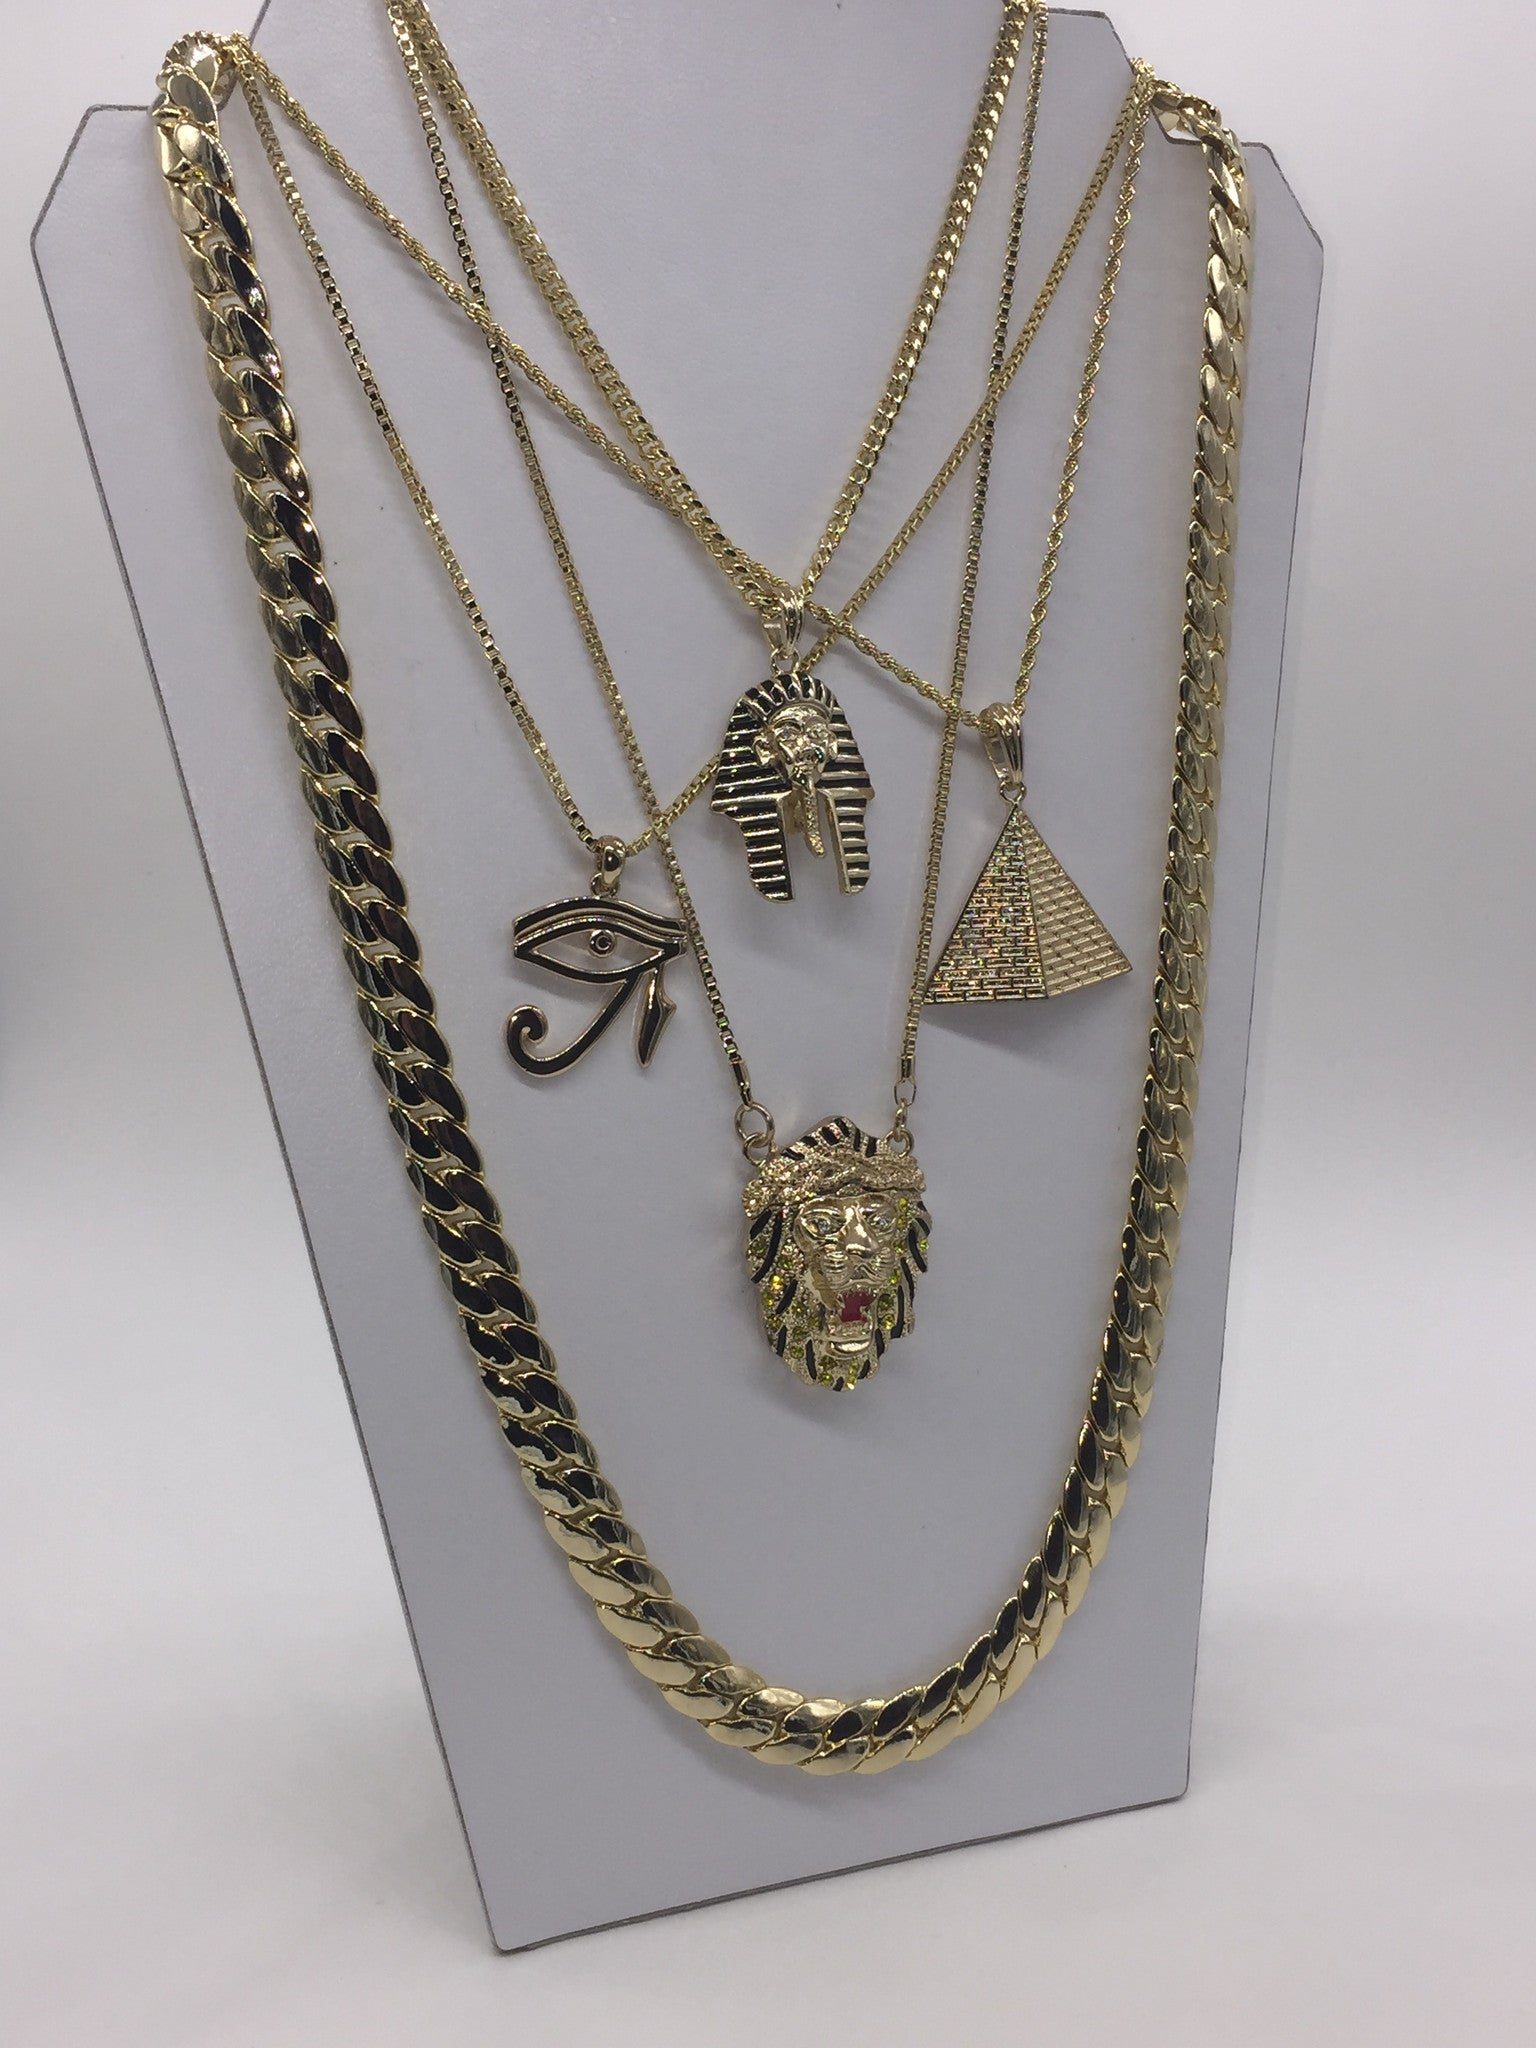 18k Gold Plated 5 Chain Set Pharoh, Pyramid, Eye of Horus, and King Lion